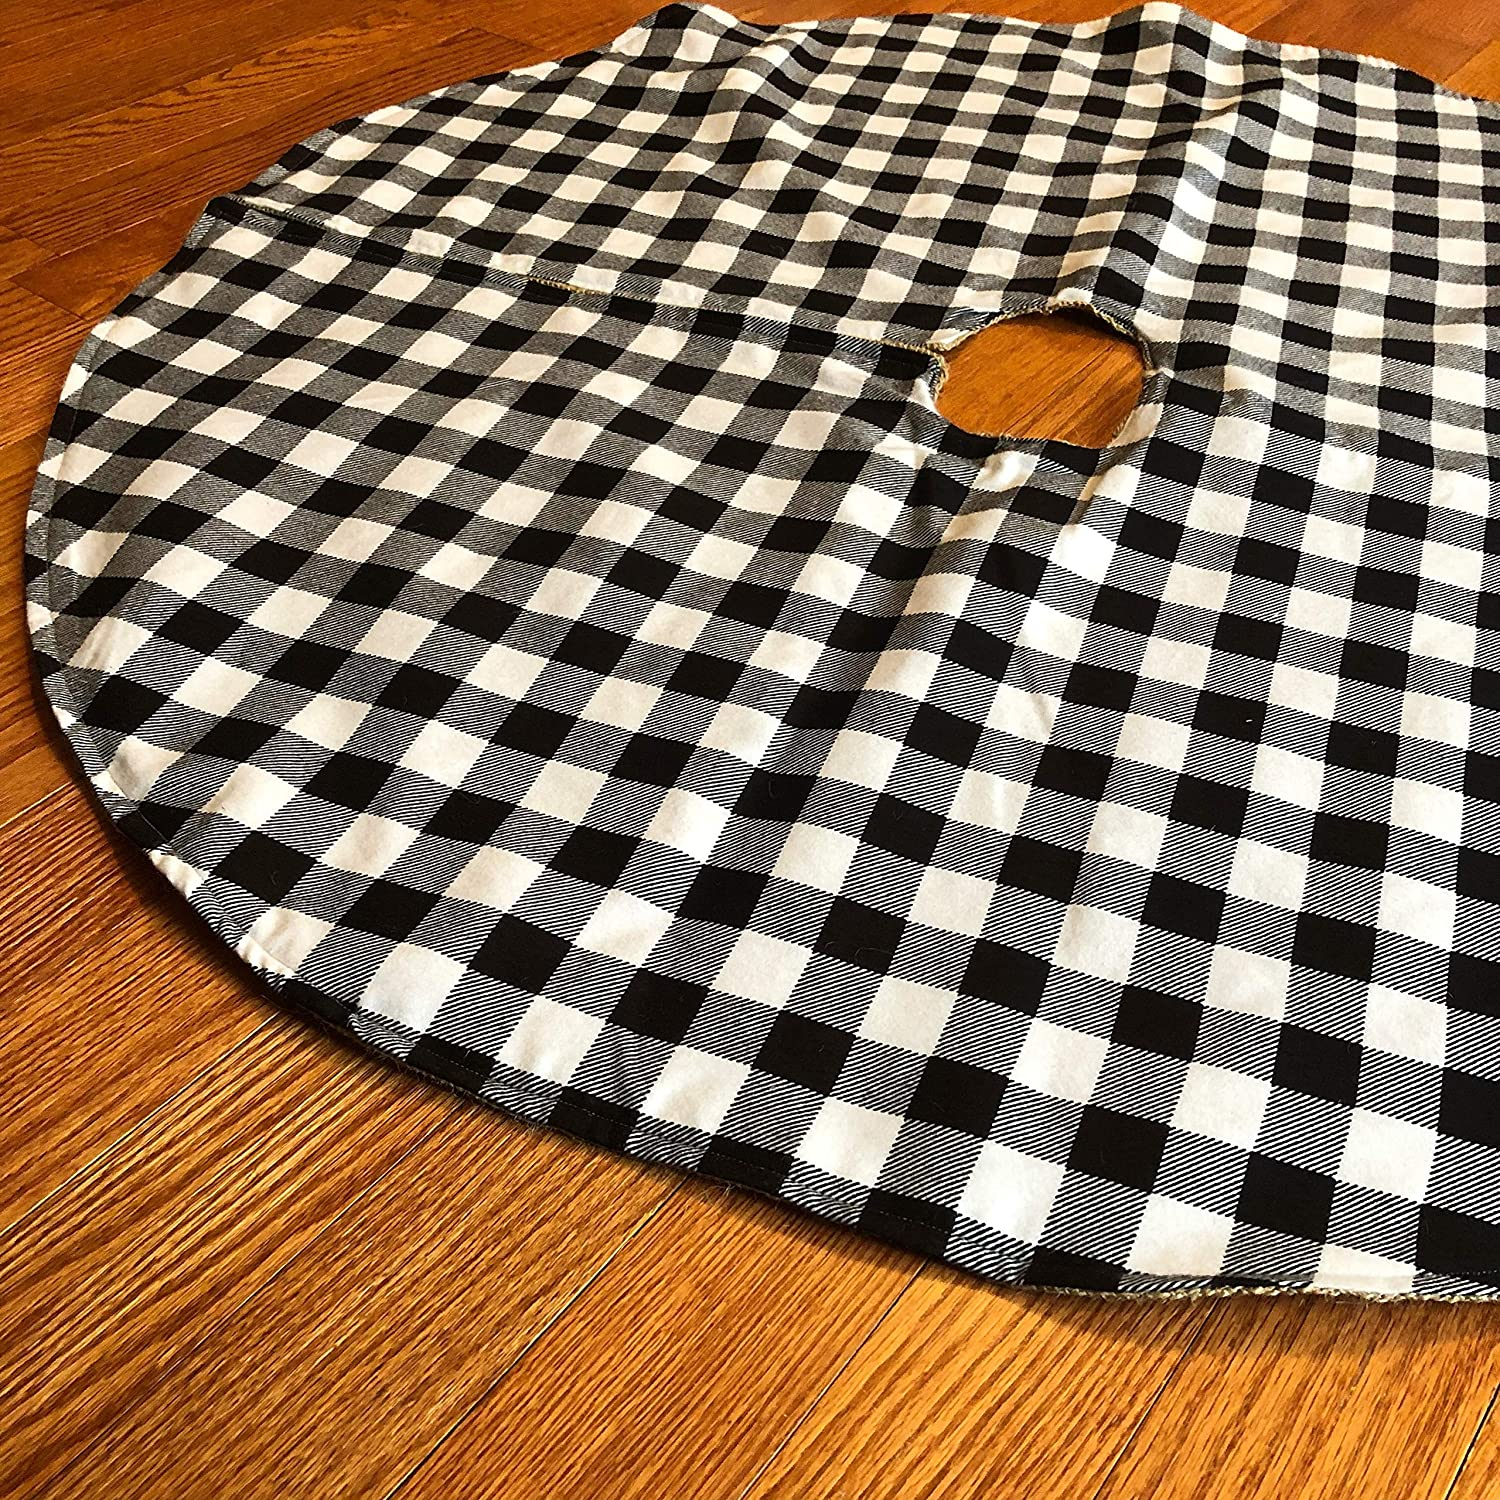 Buffalo Plaid & Natural Burlap Tree Skirt-Black & White Buffalo Check